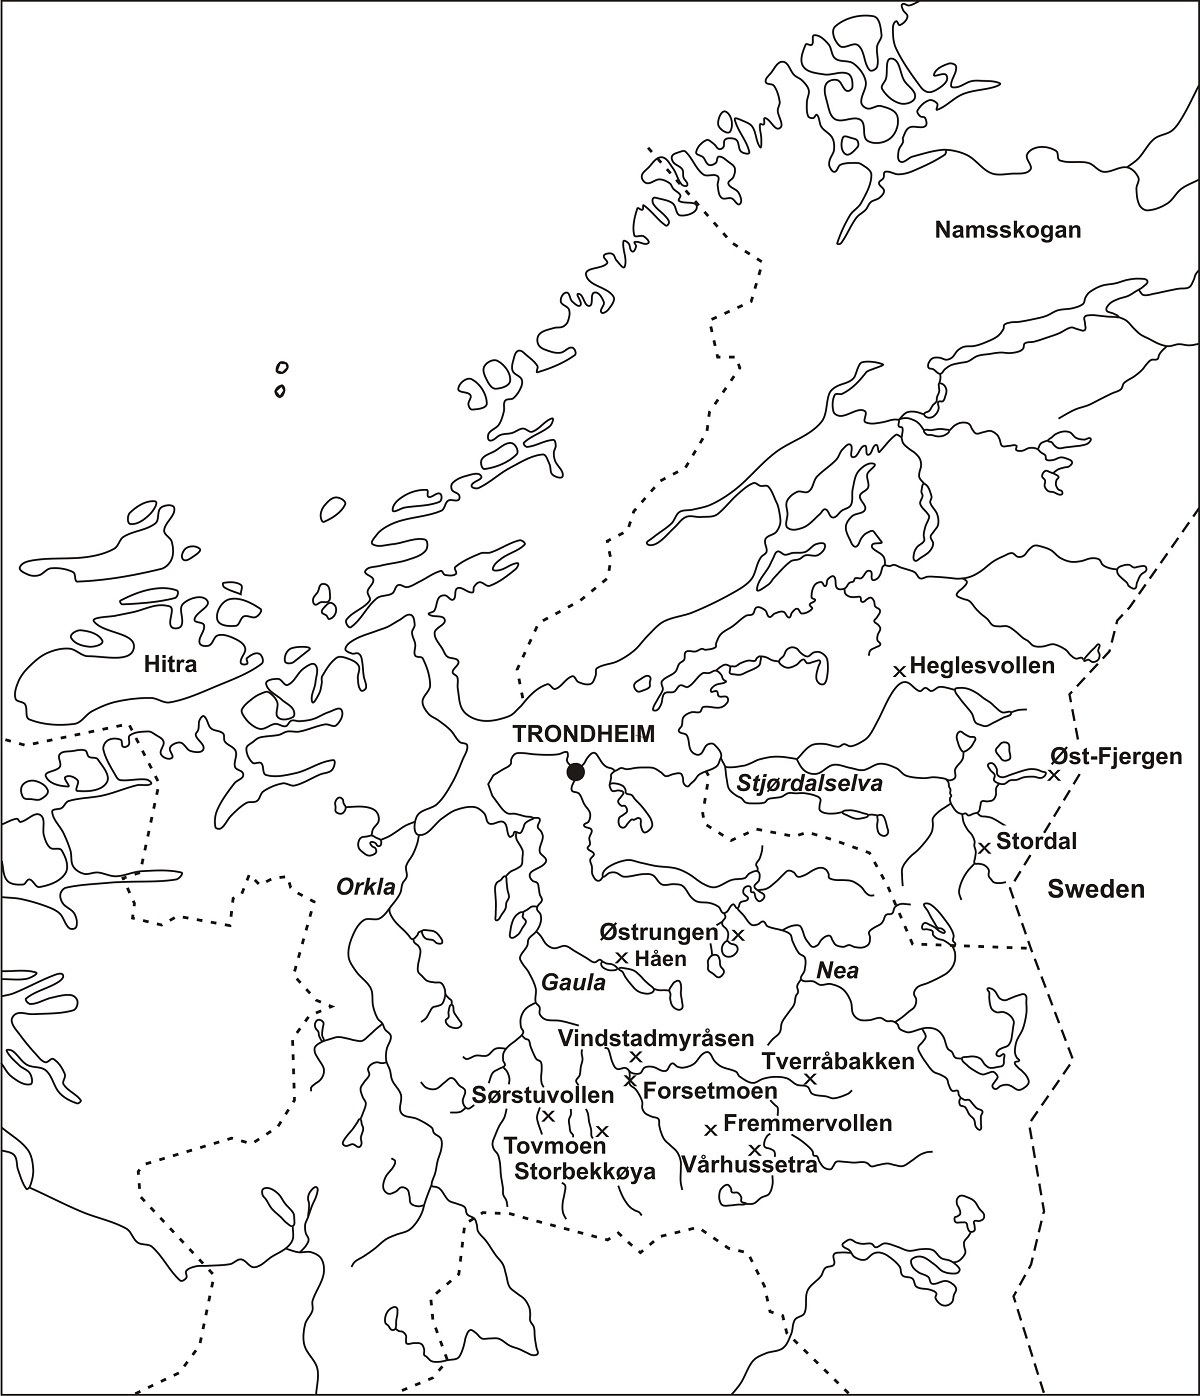 Places that testify to iron production in Trøndelag: Heglesvollen, Øst-Fjergen, Stordalen, Østrungen, Tovmoen, Storbekkøya, Vårhussetra, Tverråbakken are all sites from the Early Iron Age that have undergone archaeometallurgical study.